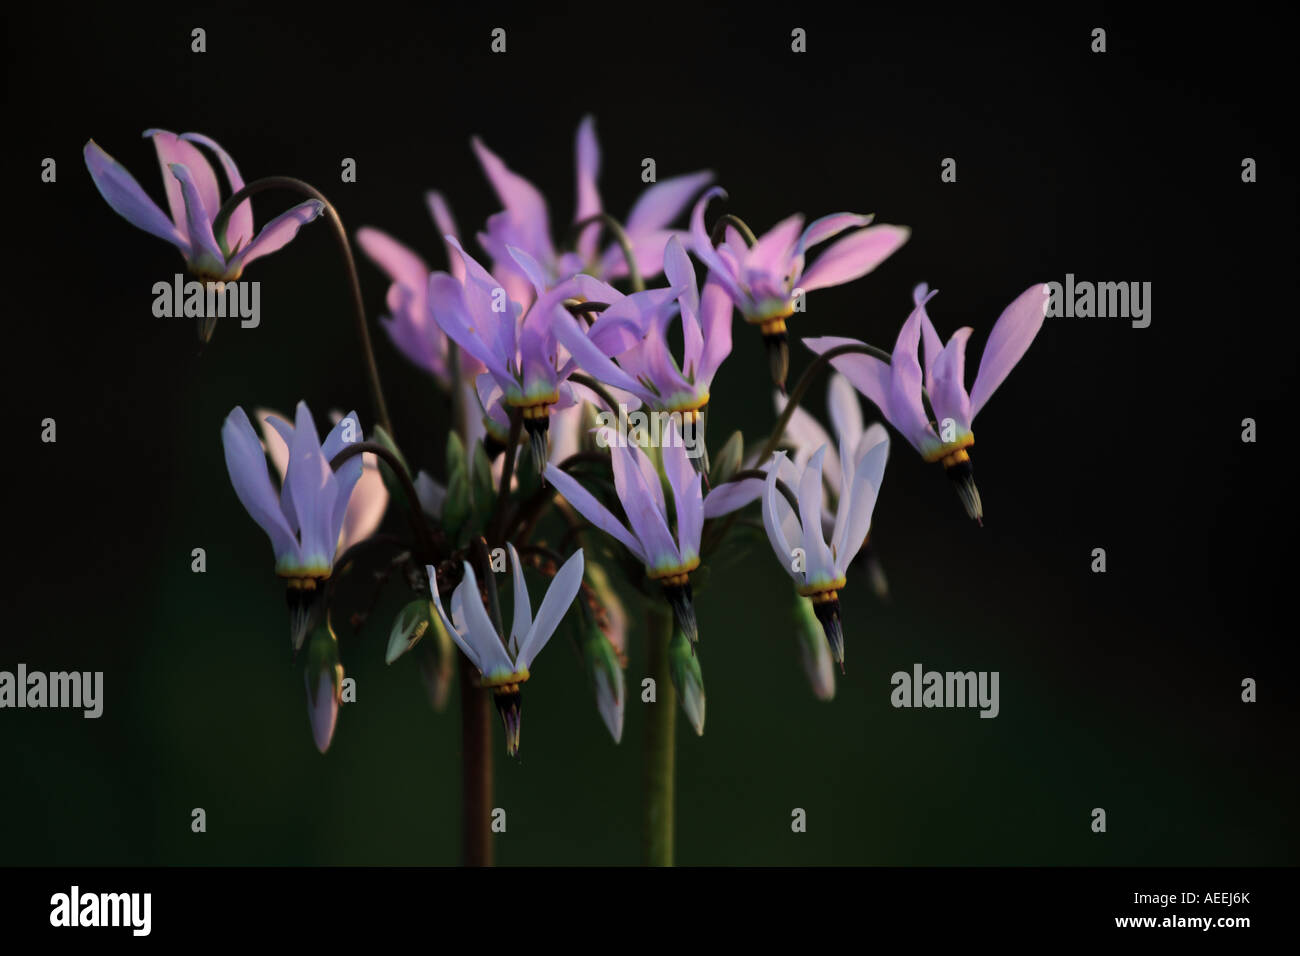 shooting star flower dodecatheon meadia in the spring evening light northern illinois prairie - Stock Image